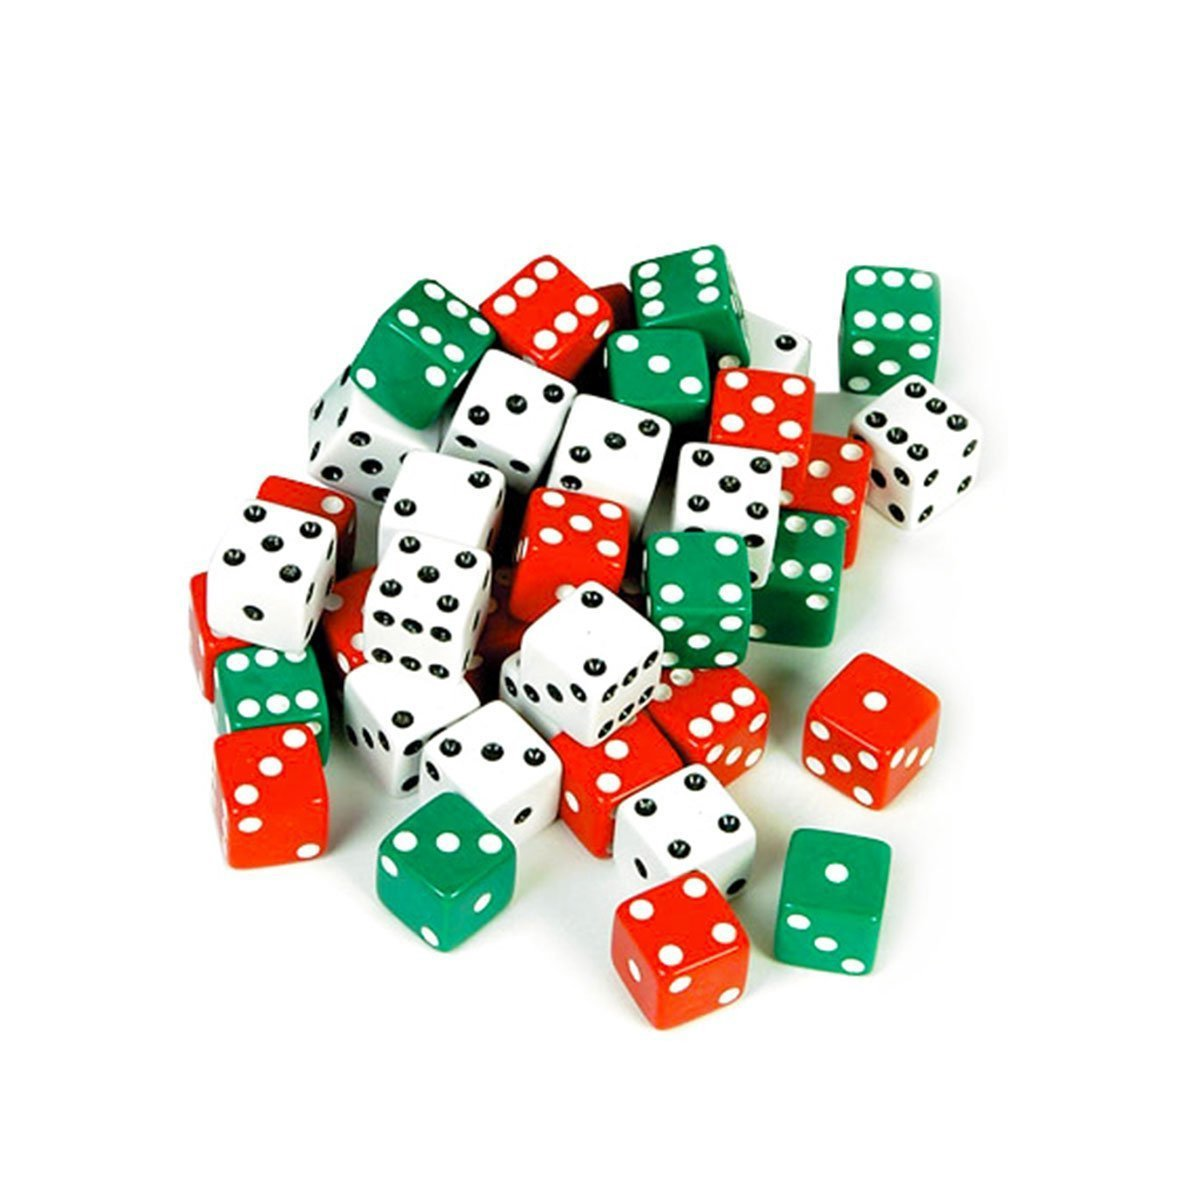 Red, White, and Green Dot Opaque Square Black Dots Casino Board Games Dice (6 of Each)Includes 6 Dice of Each Color: Red, White & Green By Tytroy